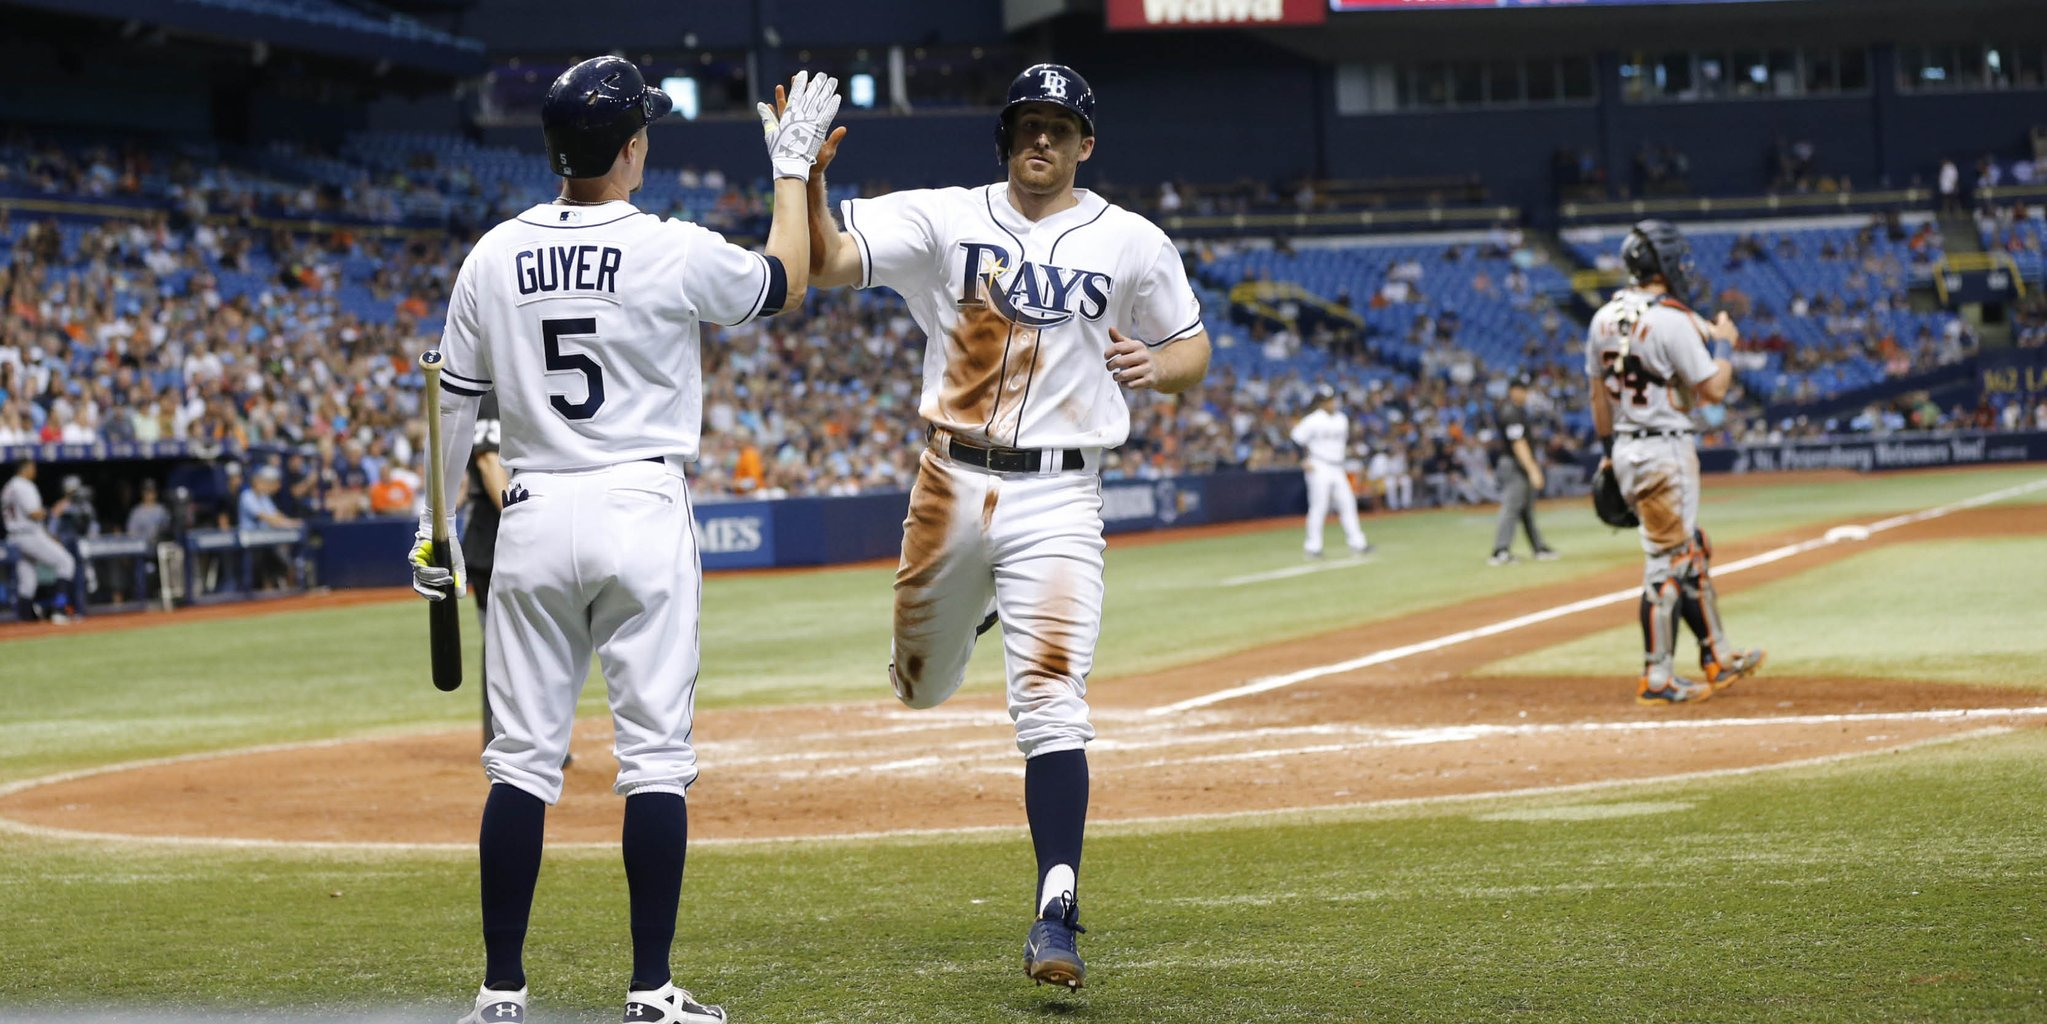 Brad Miller scores on Logan Morrison's sac-fly Saturday afternoon. (Photo Credit: Tampa Bay Rays)